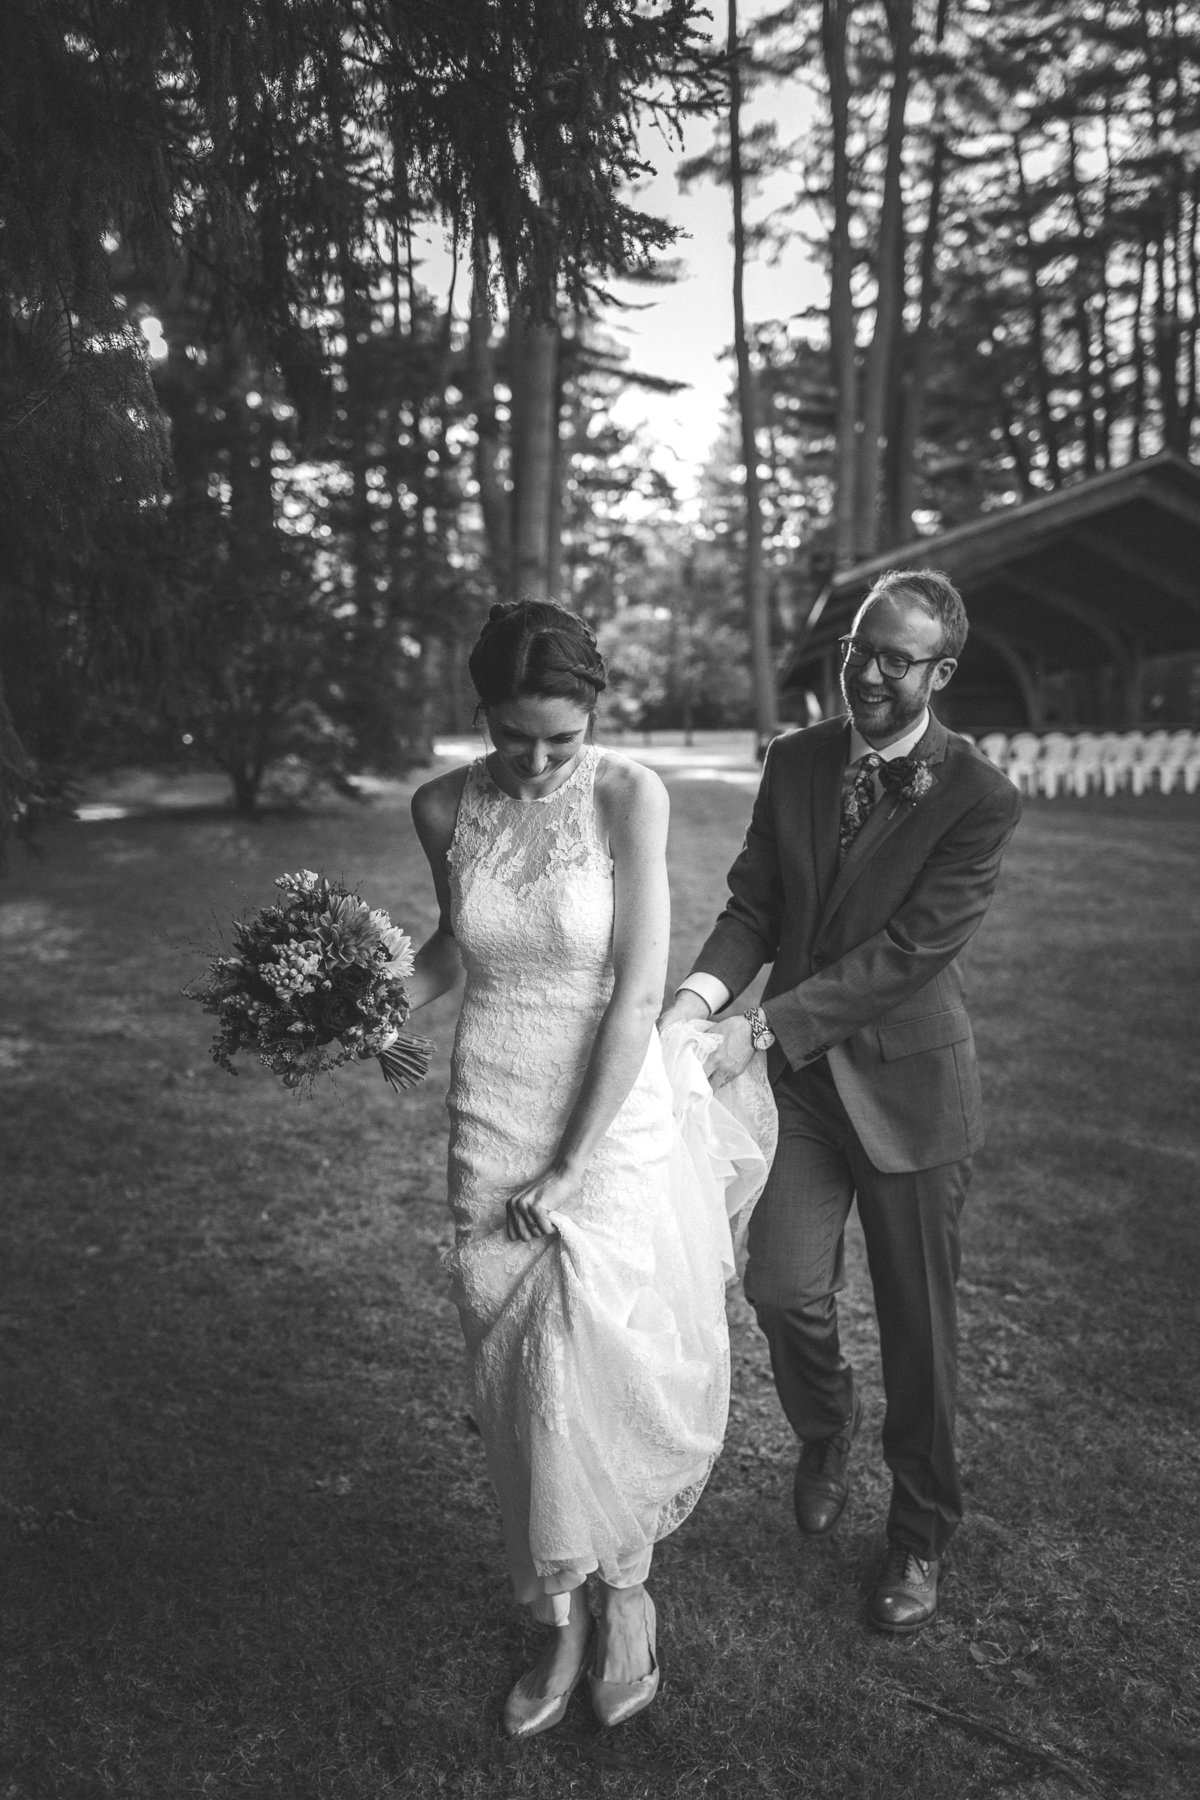 Northampton_Massachusetts__fall_wedding_About_Time_Photography_Look_Park_photo_29